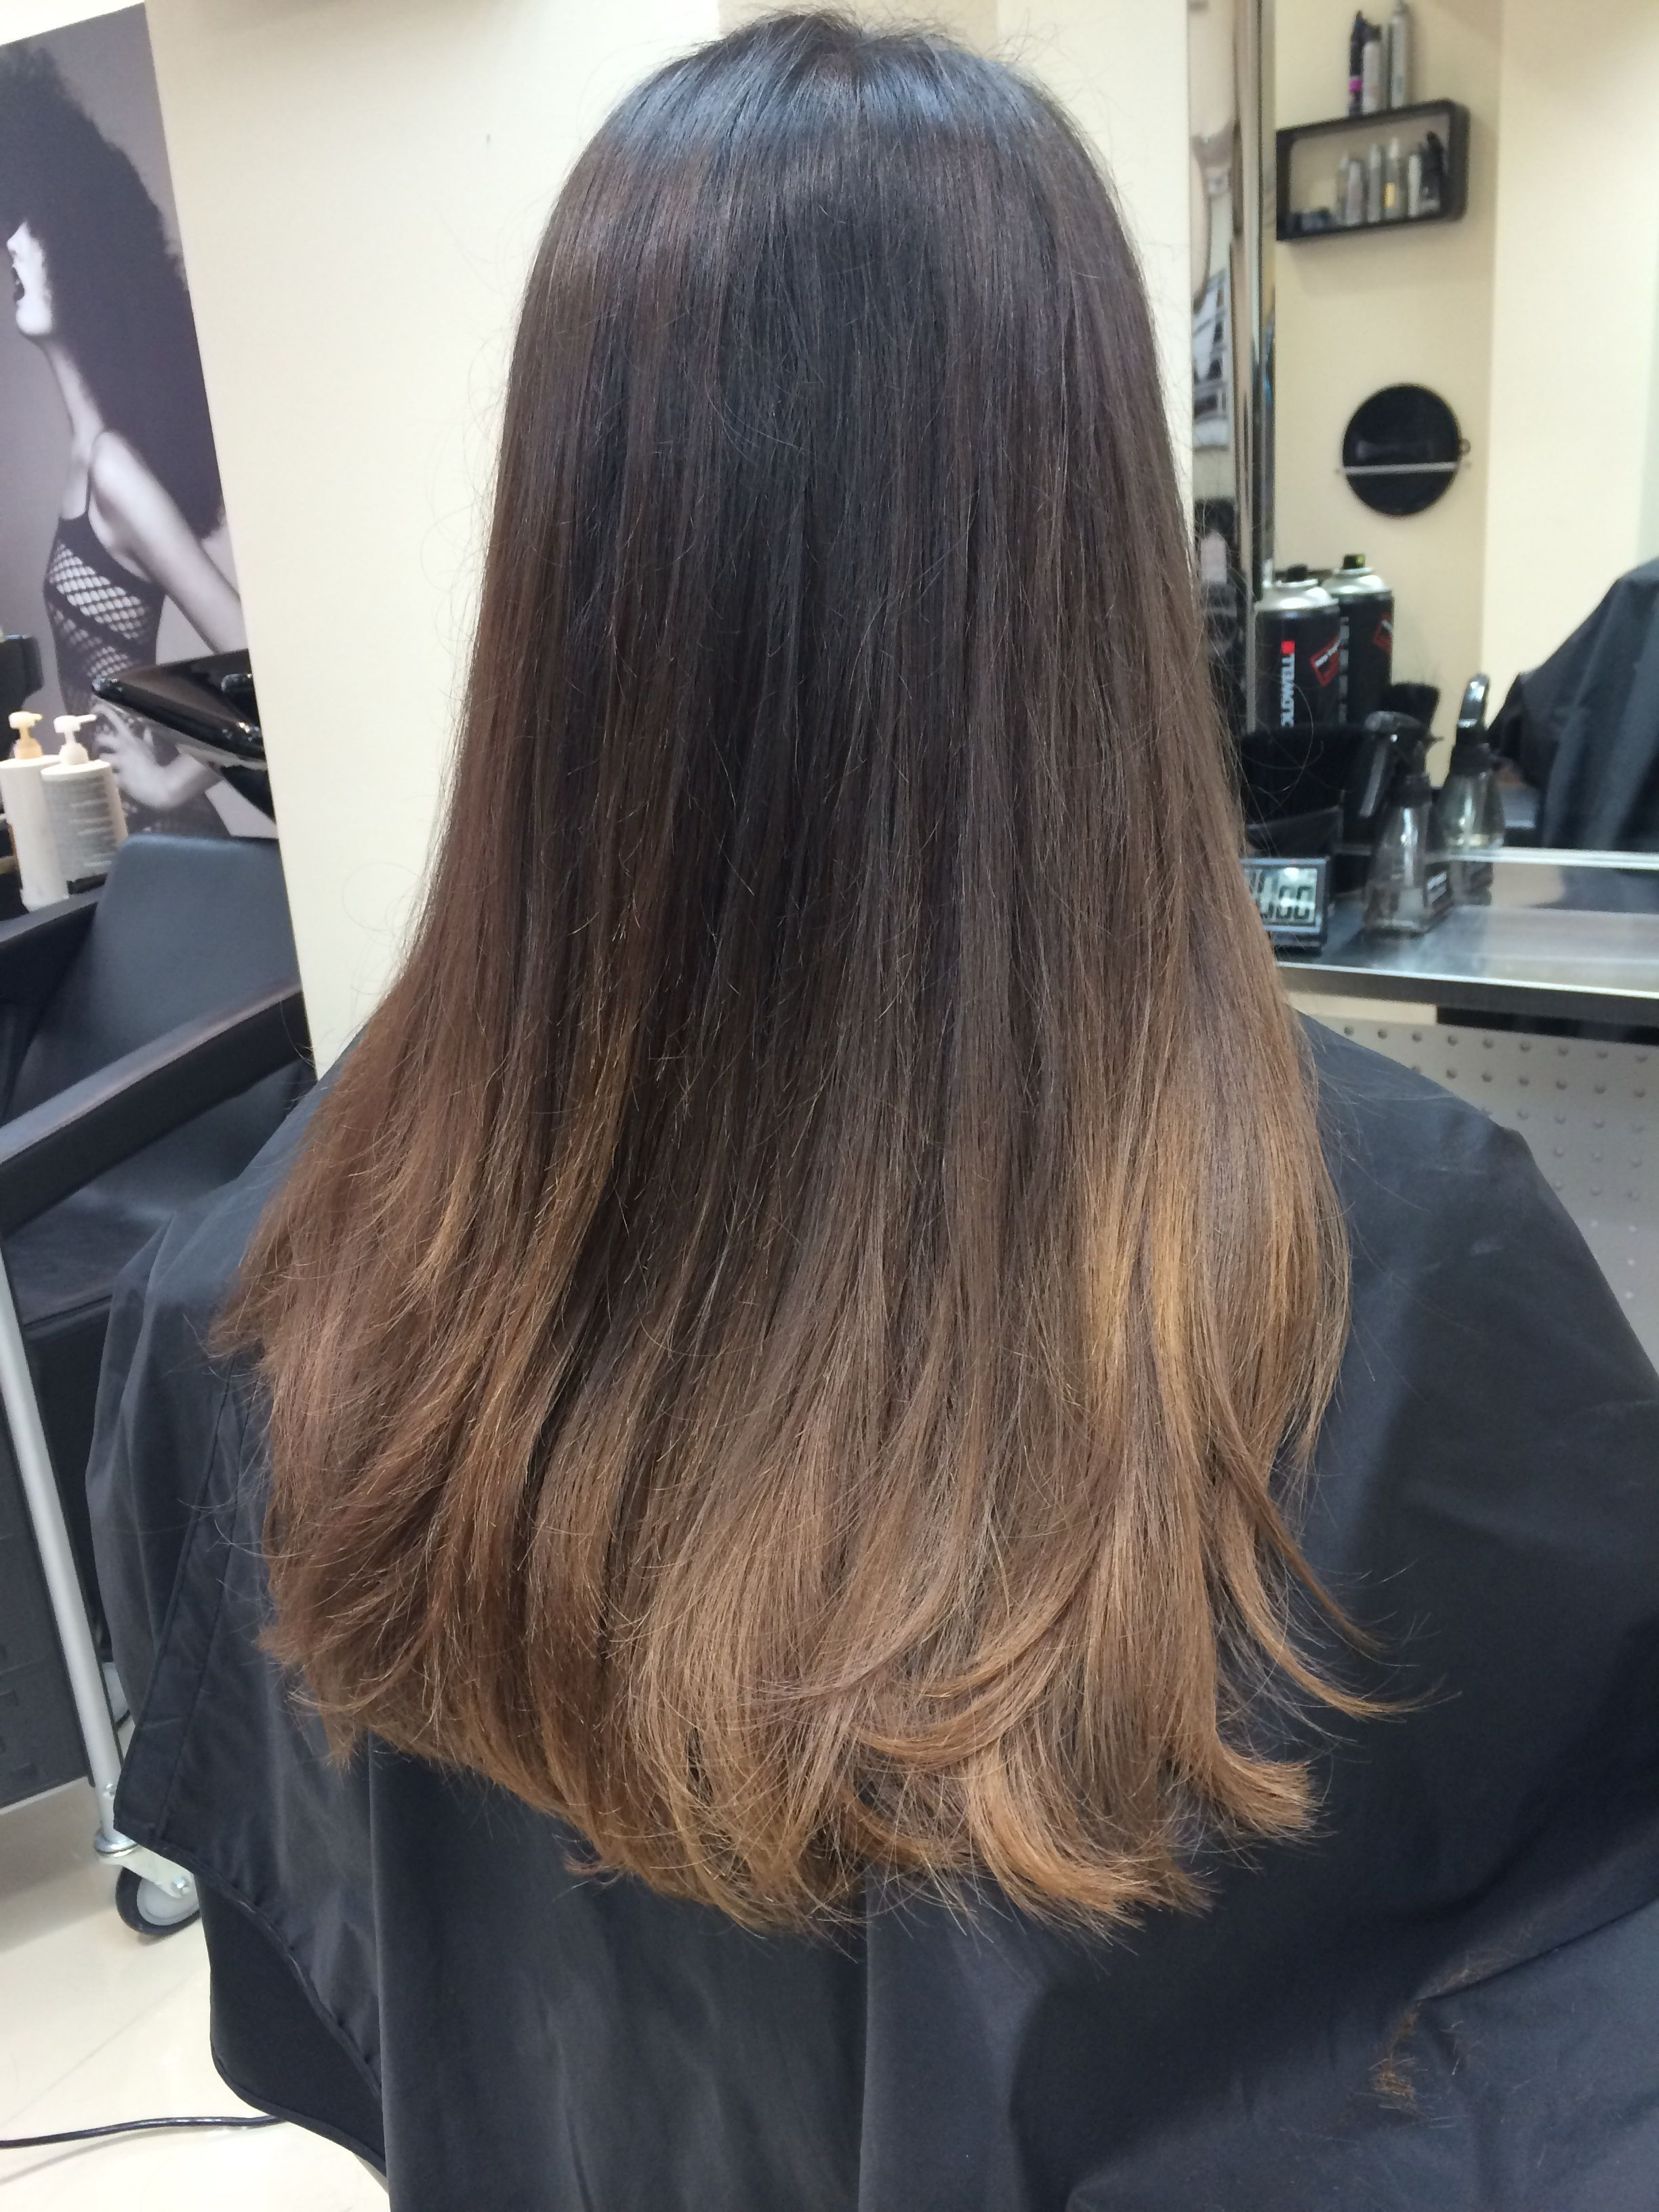 Caramel ombré with natural medium brown hair 後ろ髪ひかれ隊